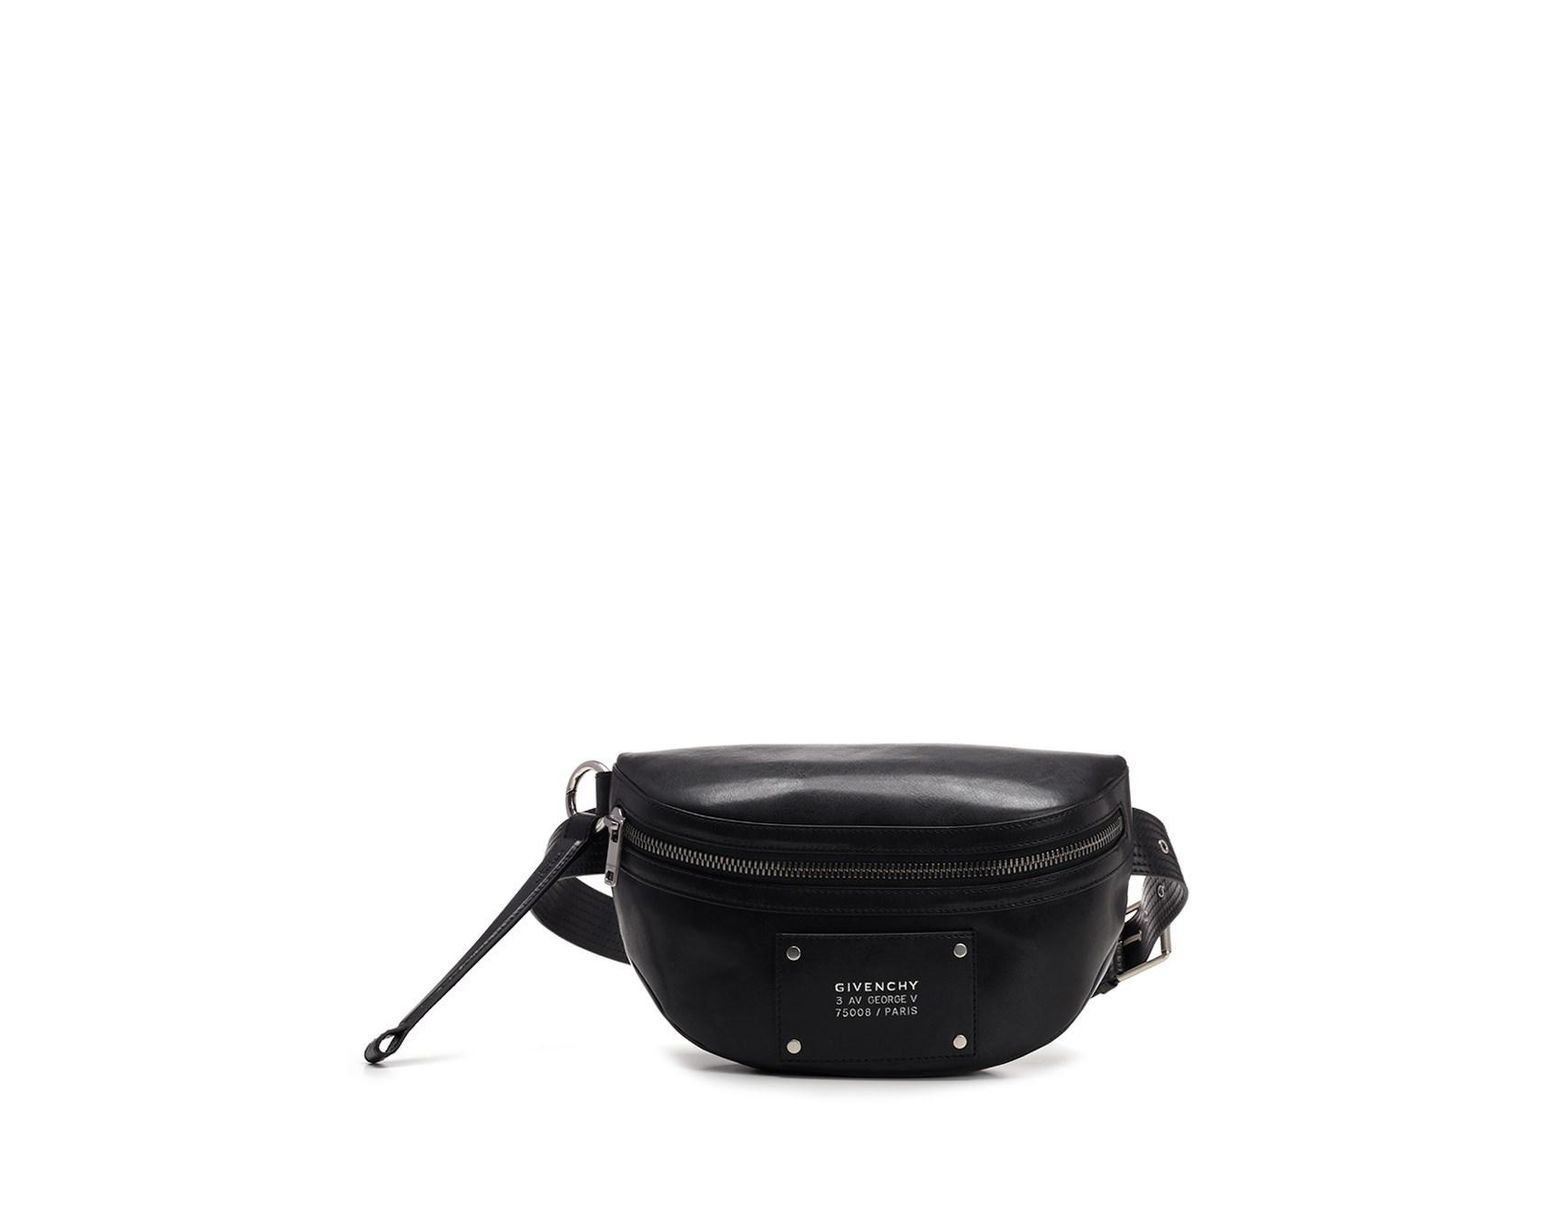 6dfc79b3247 Givenchy Belt Bags Fw19 Bk504wk0kt 001 in Black for Men - Lyst